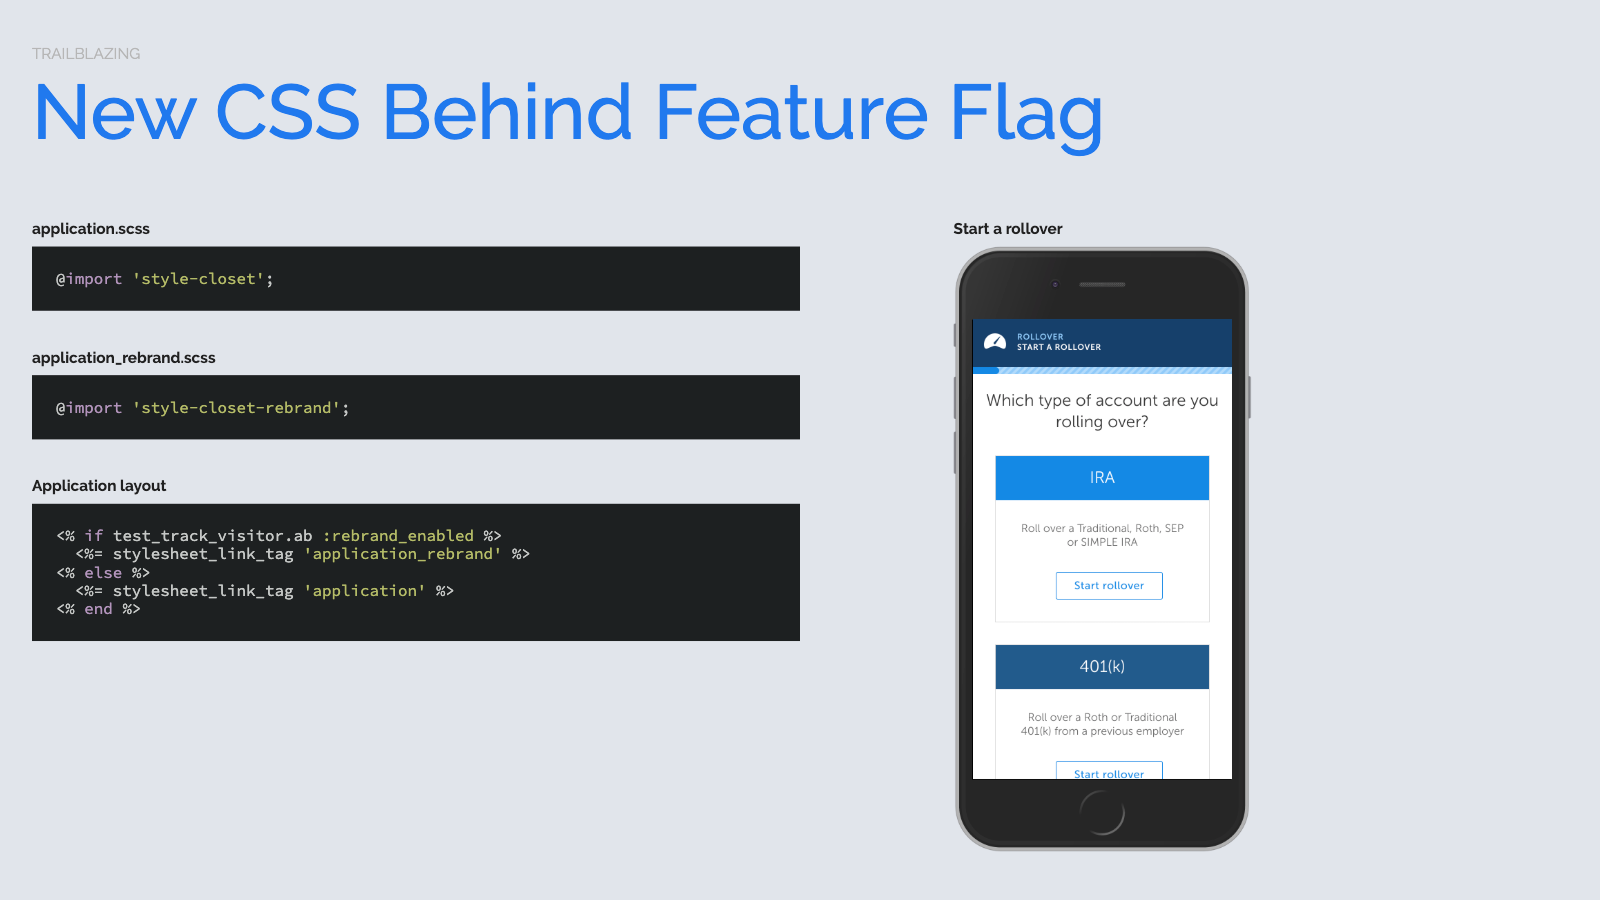 Slide content, Rails app strategy pattern for serving different CSS based on TestTrack rebrand_enabled feature flag. Displaying styles currently in production